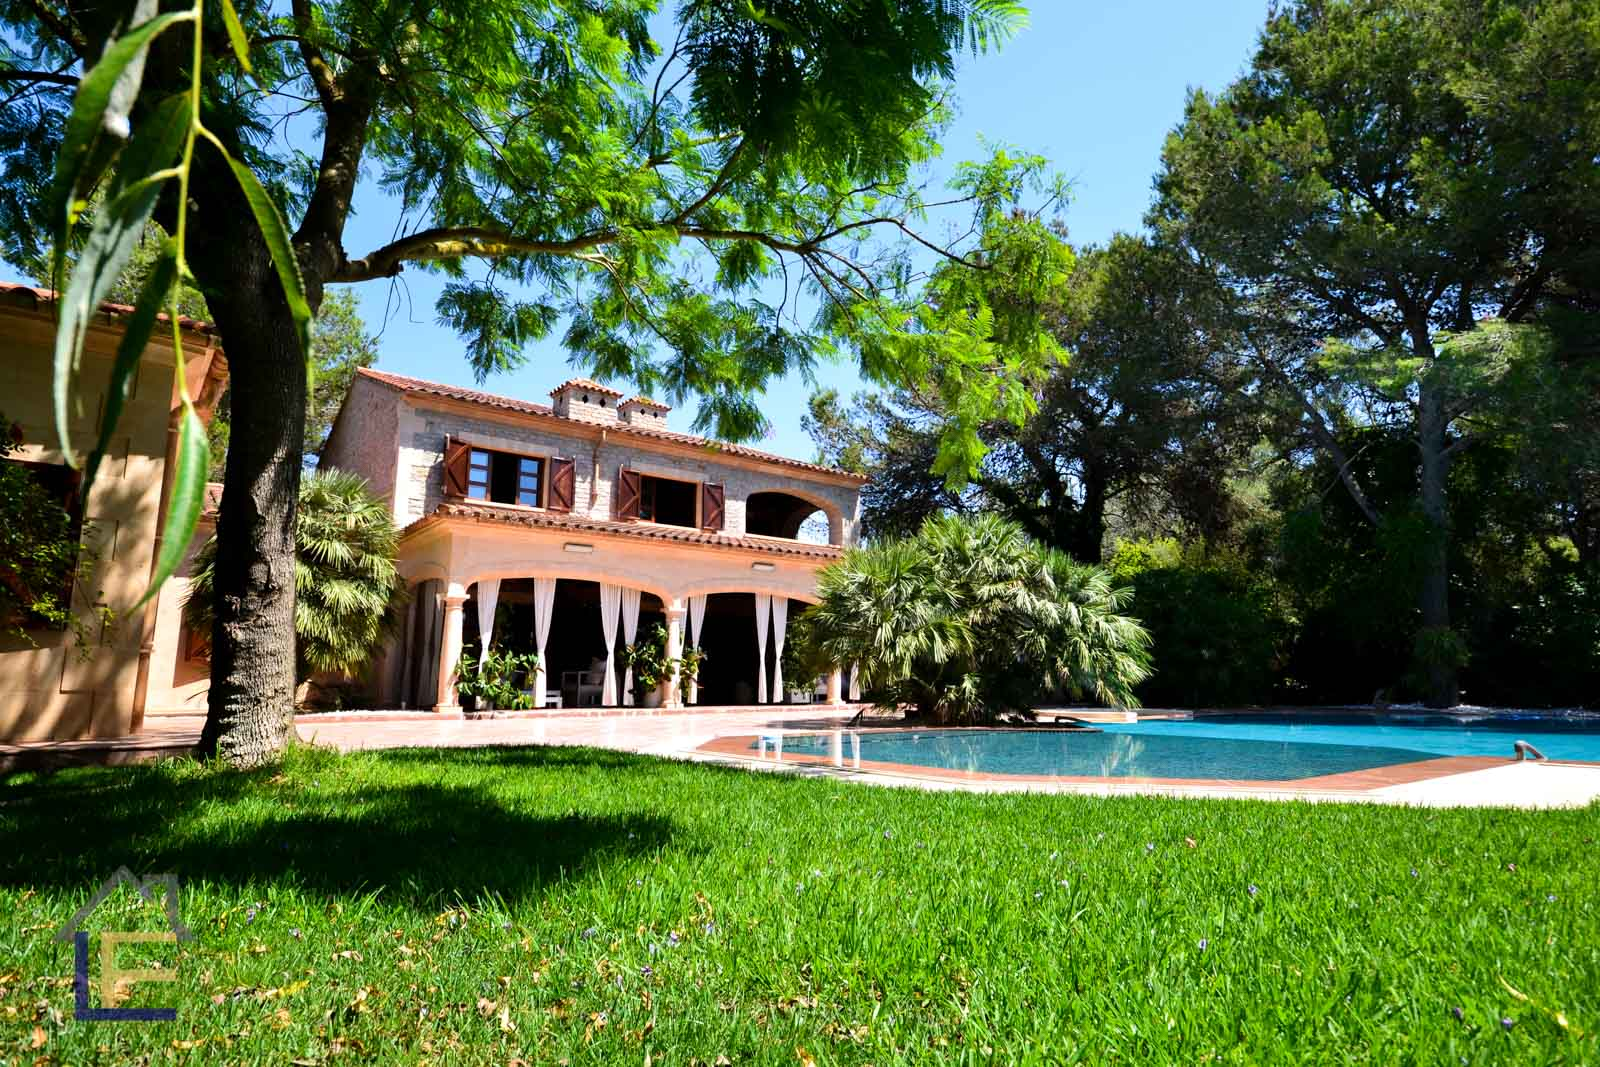 Luxurious finca with ETV license and a dream garden